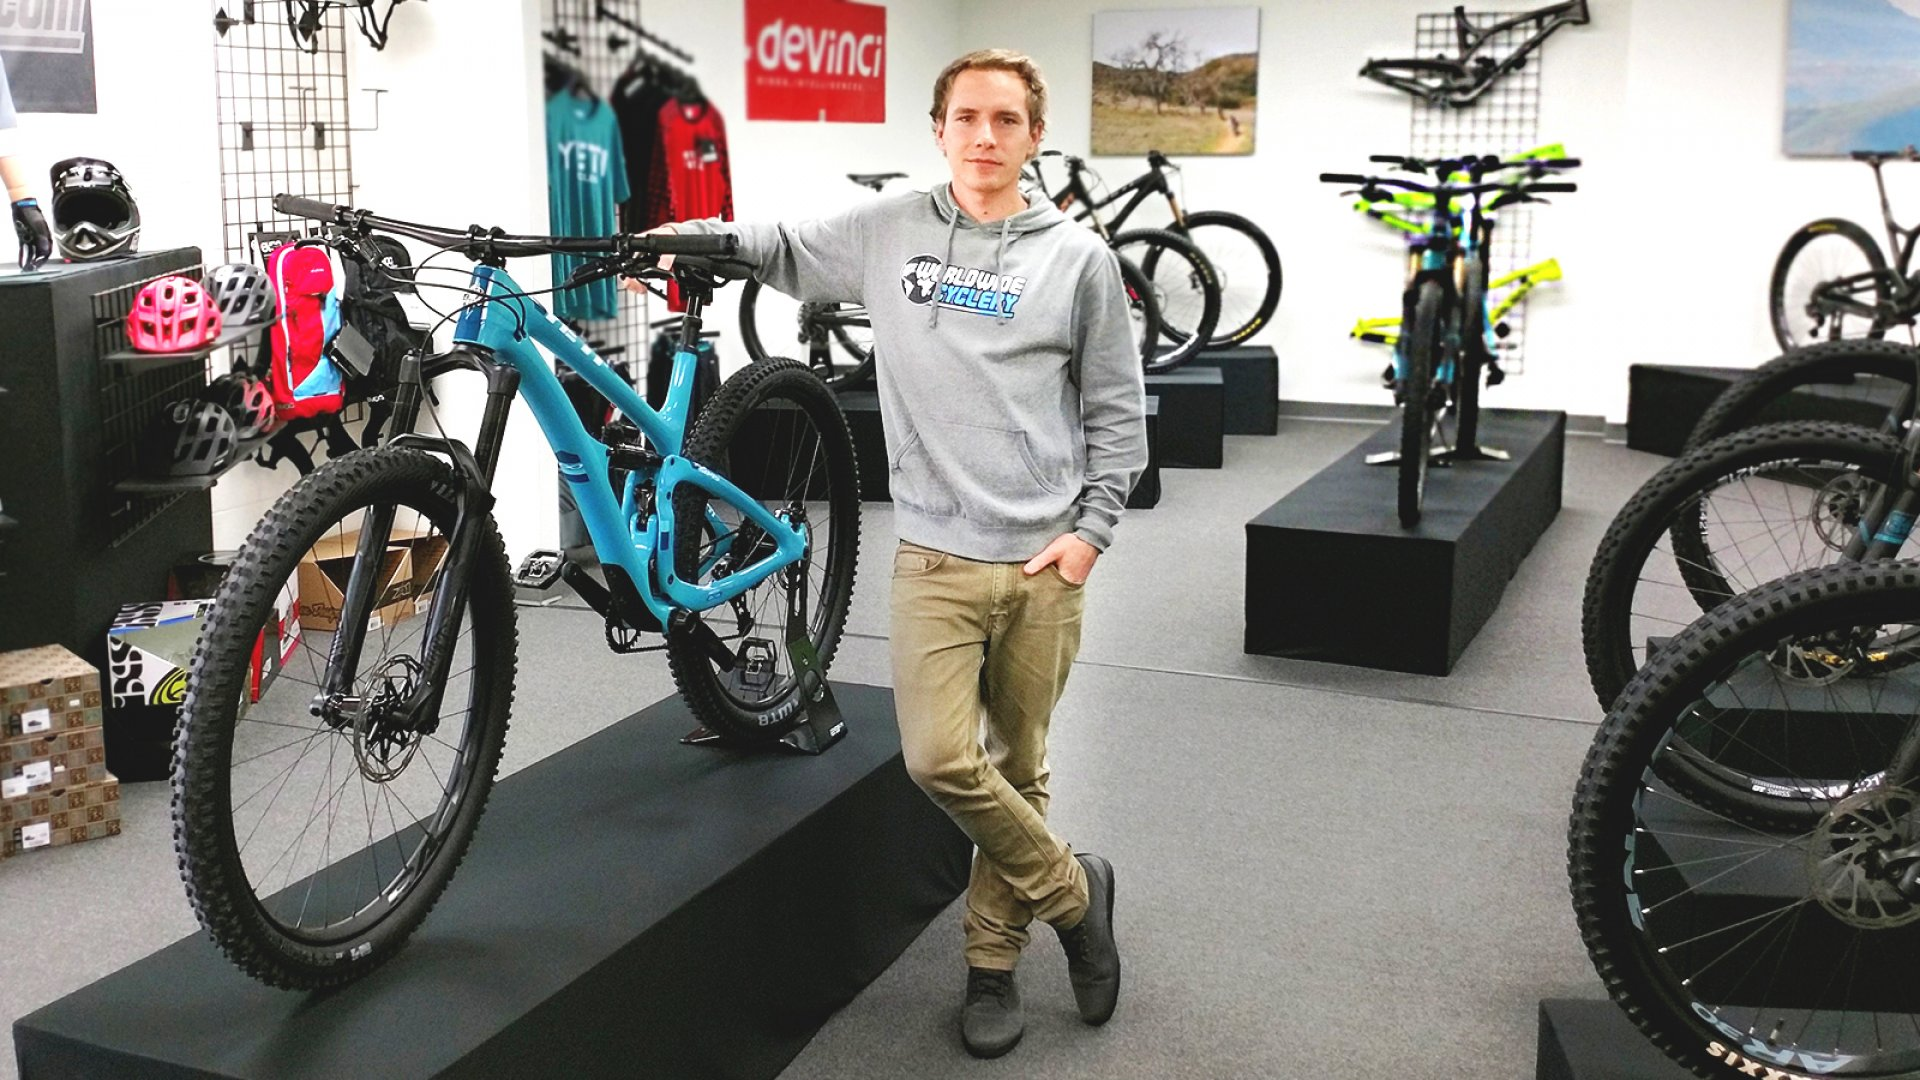 Jeff Cayley, the founder of Worldwide Cyclery, at his shop in Newbury Park, California.